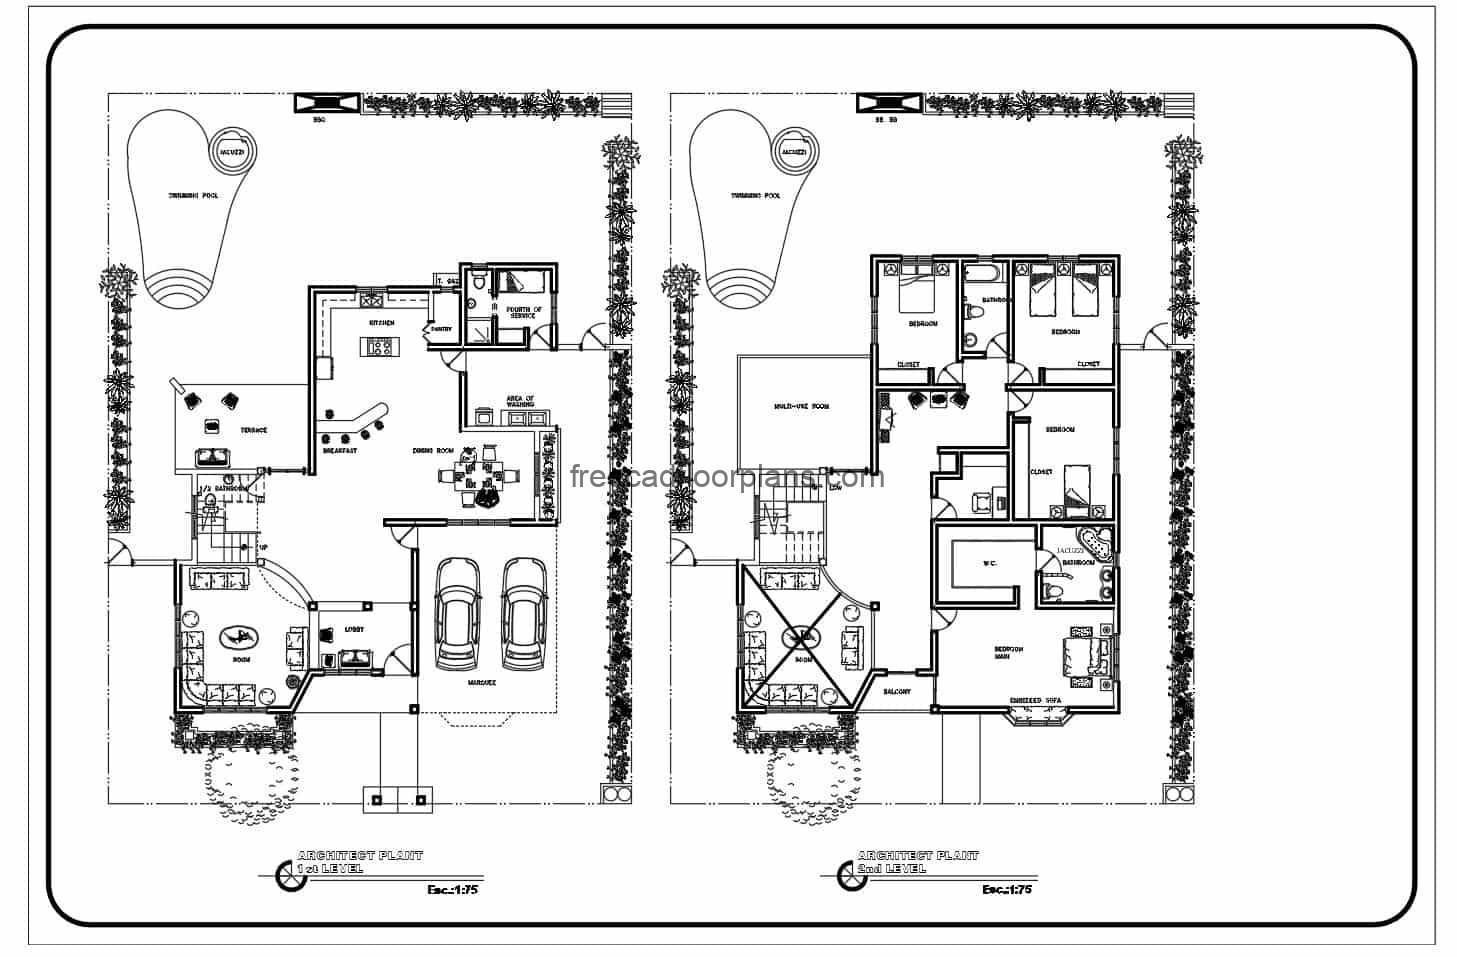 2D architectural plans of complete project in Autocad DWG format of concrete house of two levels with four rooms in total. double canopy on the first floor, living room, lobby, half bathroom under the stairs, breakfast room, kitchen, laundry area, rear terrace with swimming pool. Second level private area with family room and four bedrooms, with multipurpose room. 2D blueprints editable CAD for free download